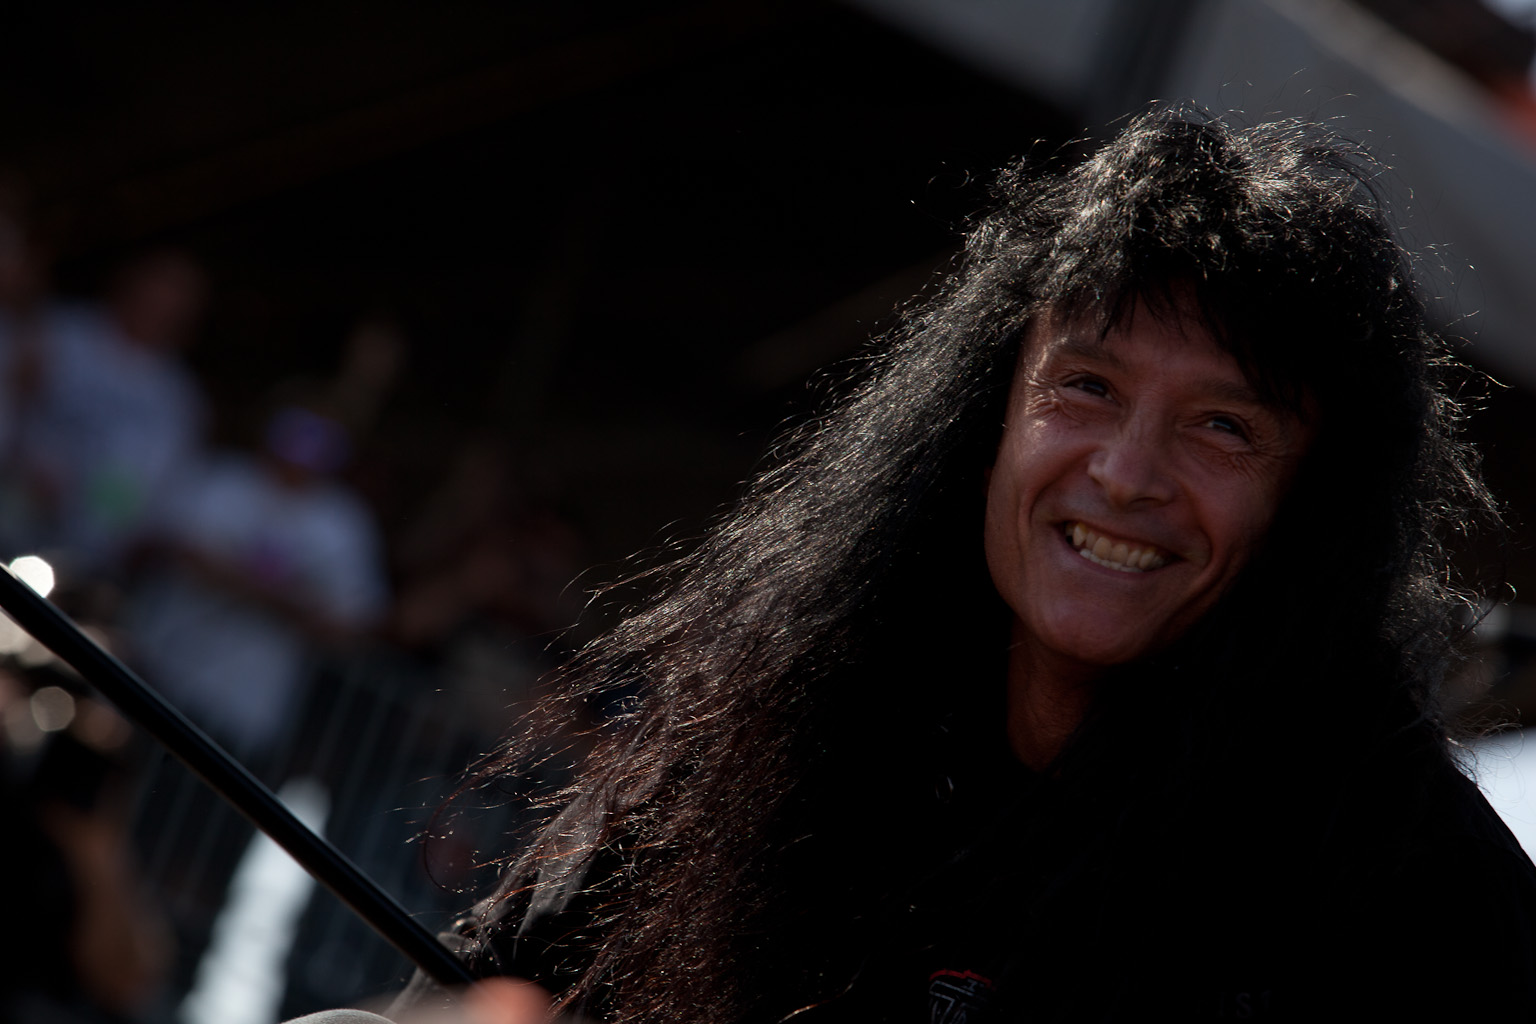 Anthrax Singer Joey Belladonna To Record Non-Anthrax Project